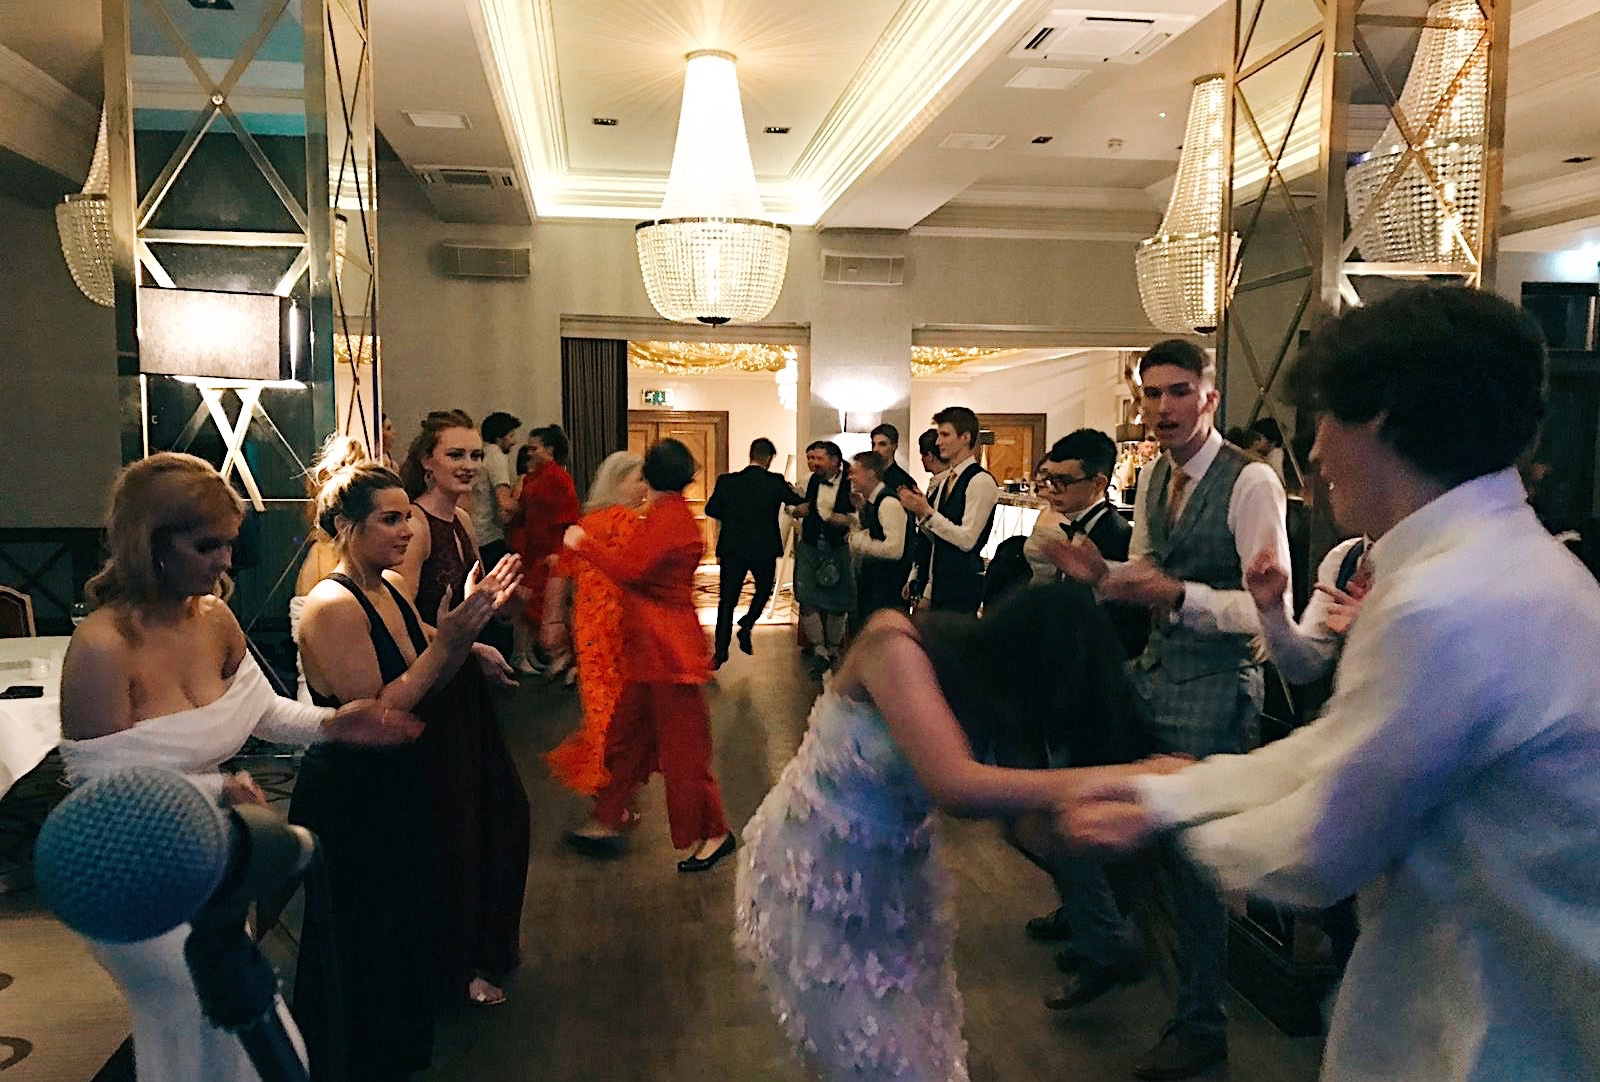 Enthusiastic dancers giving it laldy at their prom